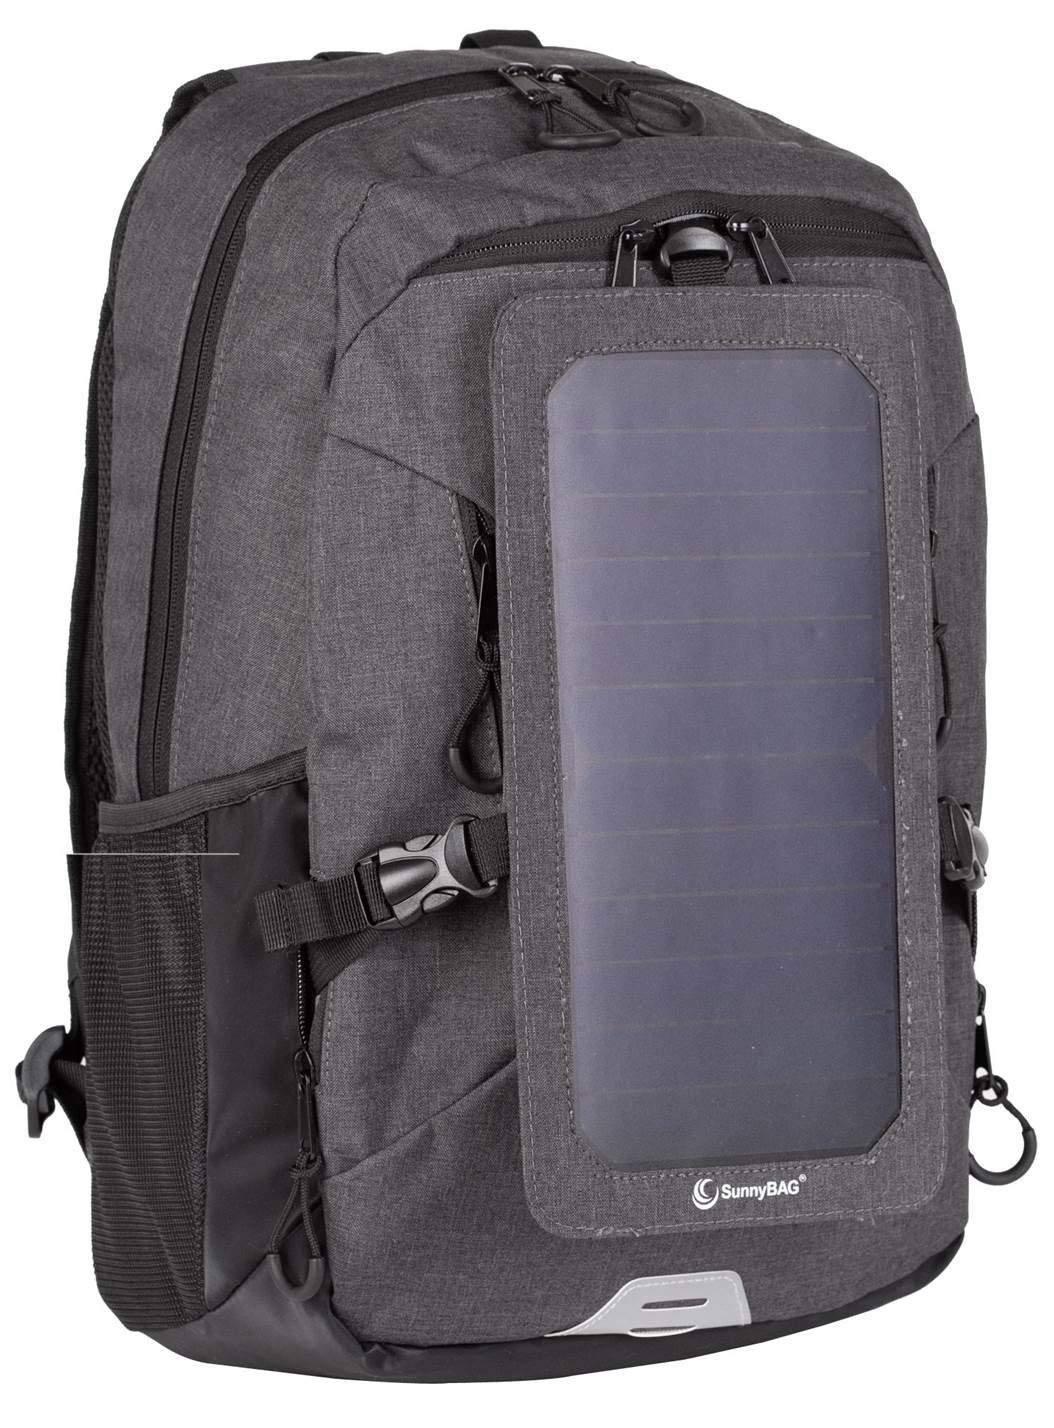 Backpack with Solar-Panel by SUNNYBAG Explorer+   solarbag Solar Charger   World's Strongest solarpanel for Smartphone Charging on The go   Black/Black